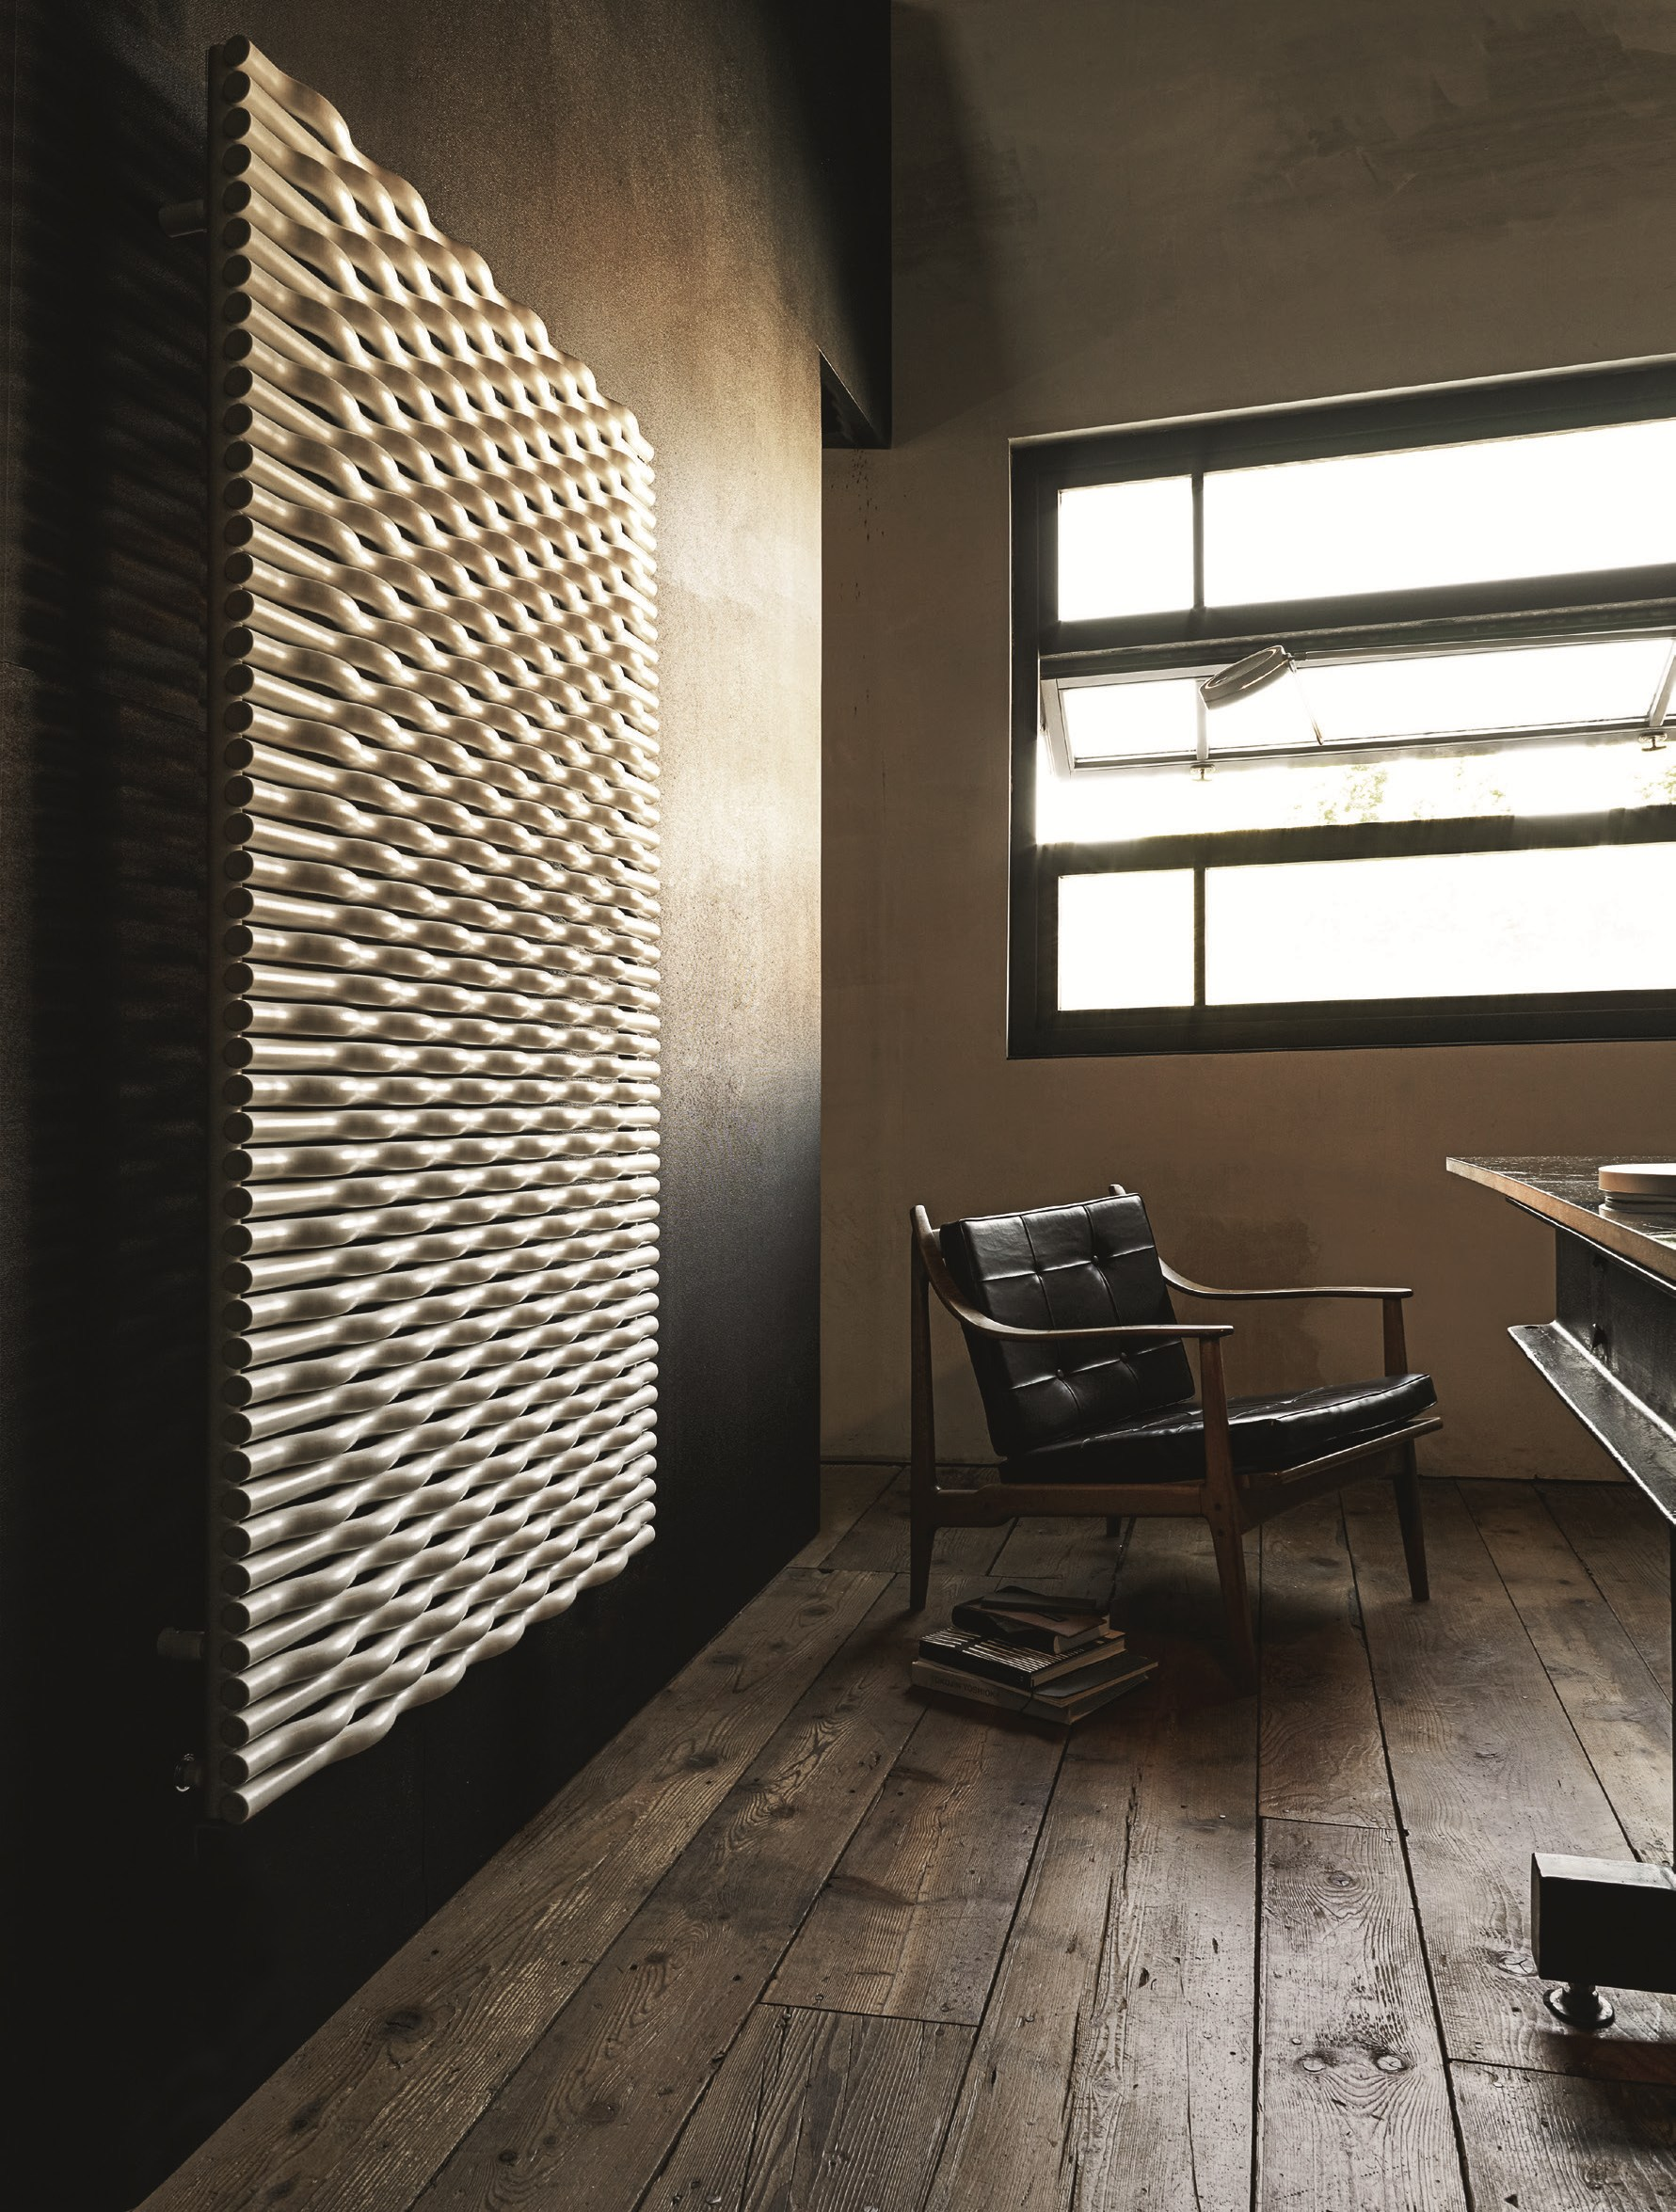 Radiateur d coratif mural trame by tubes radiatori design for Element decoratif mural